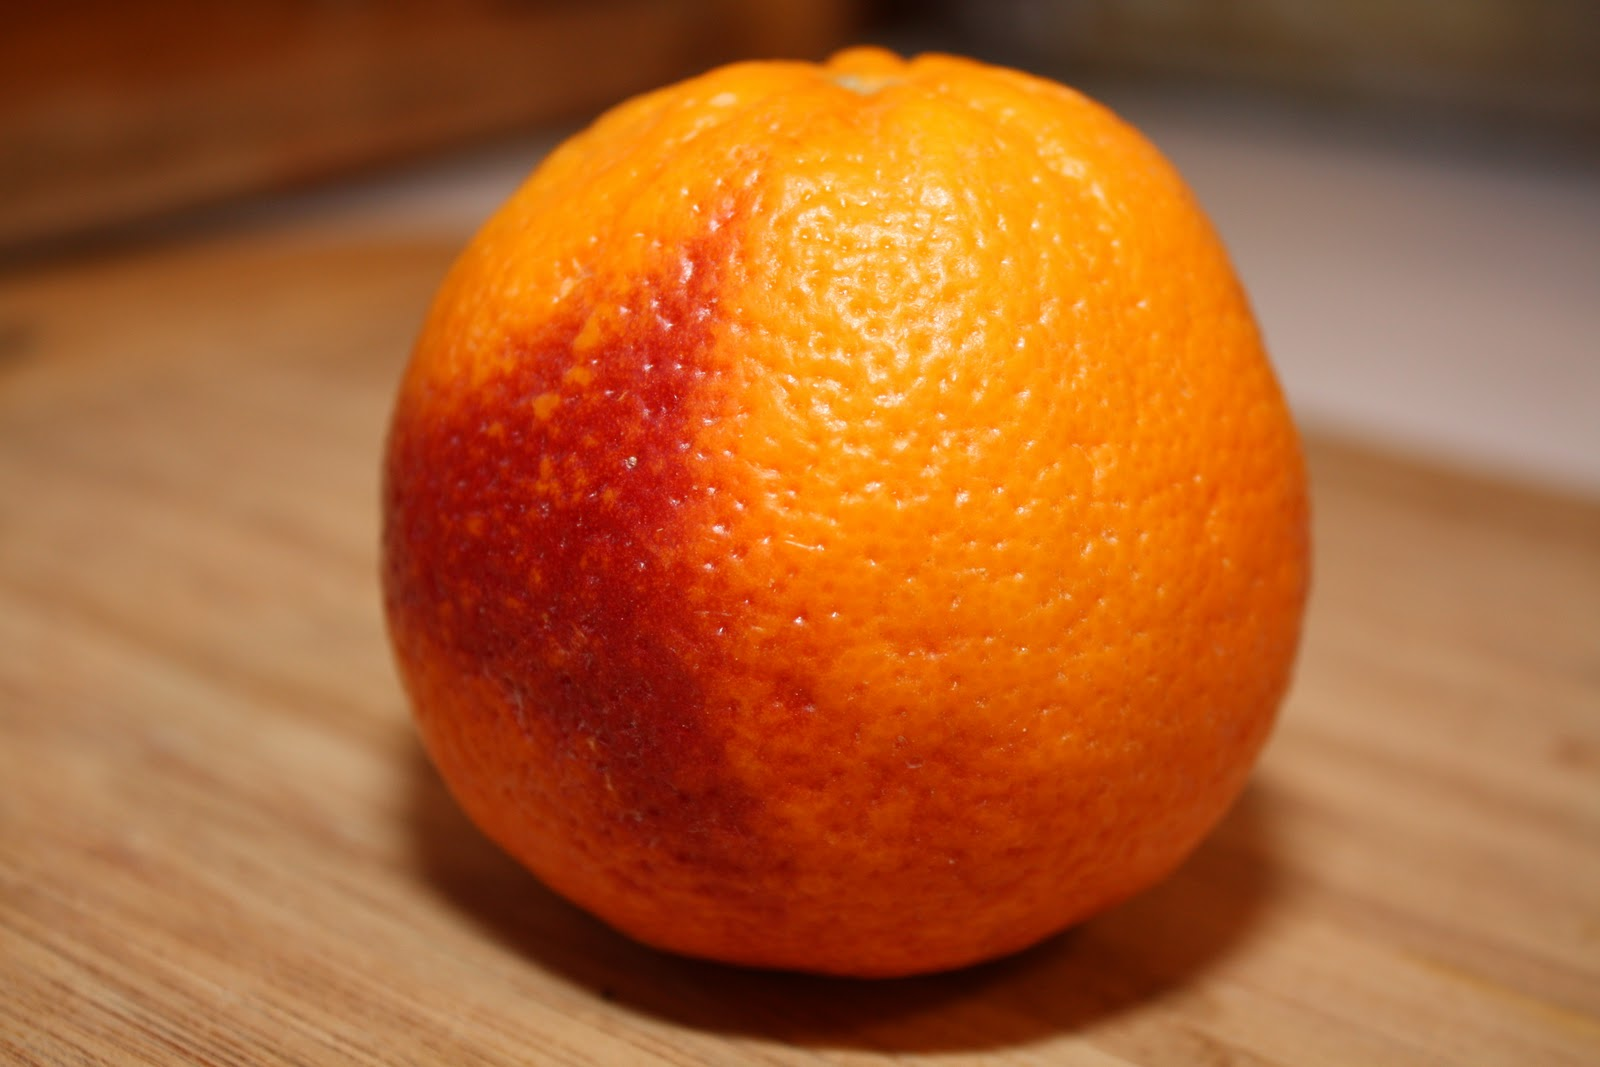 Blood oranges are one of the few remaining fruits that seem to be ...